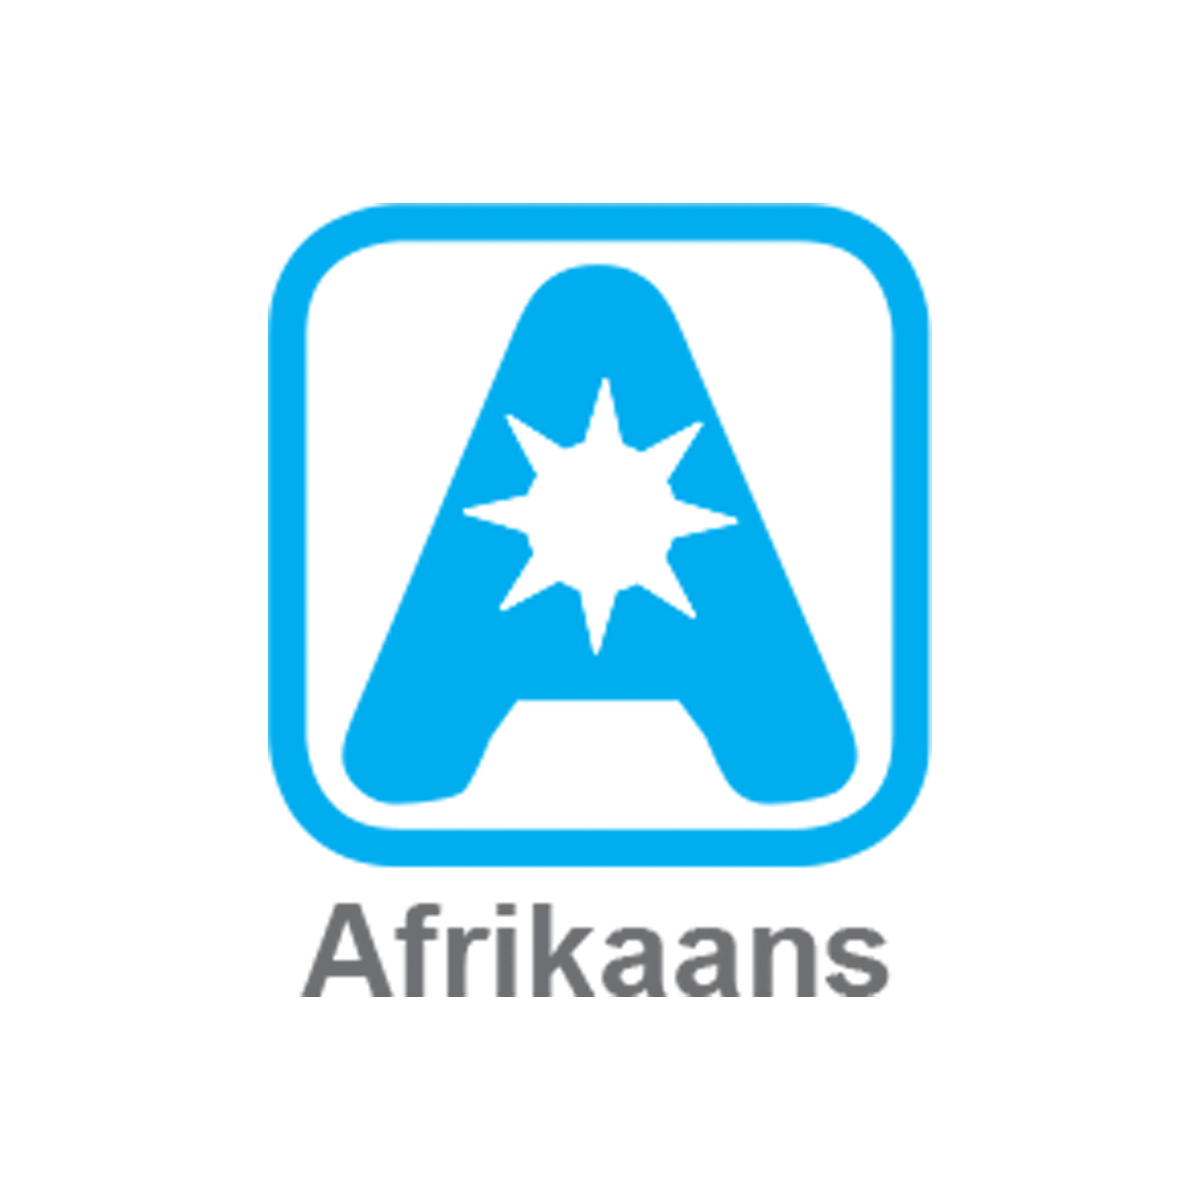 The Talking Dictionary Afrikaans